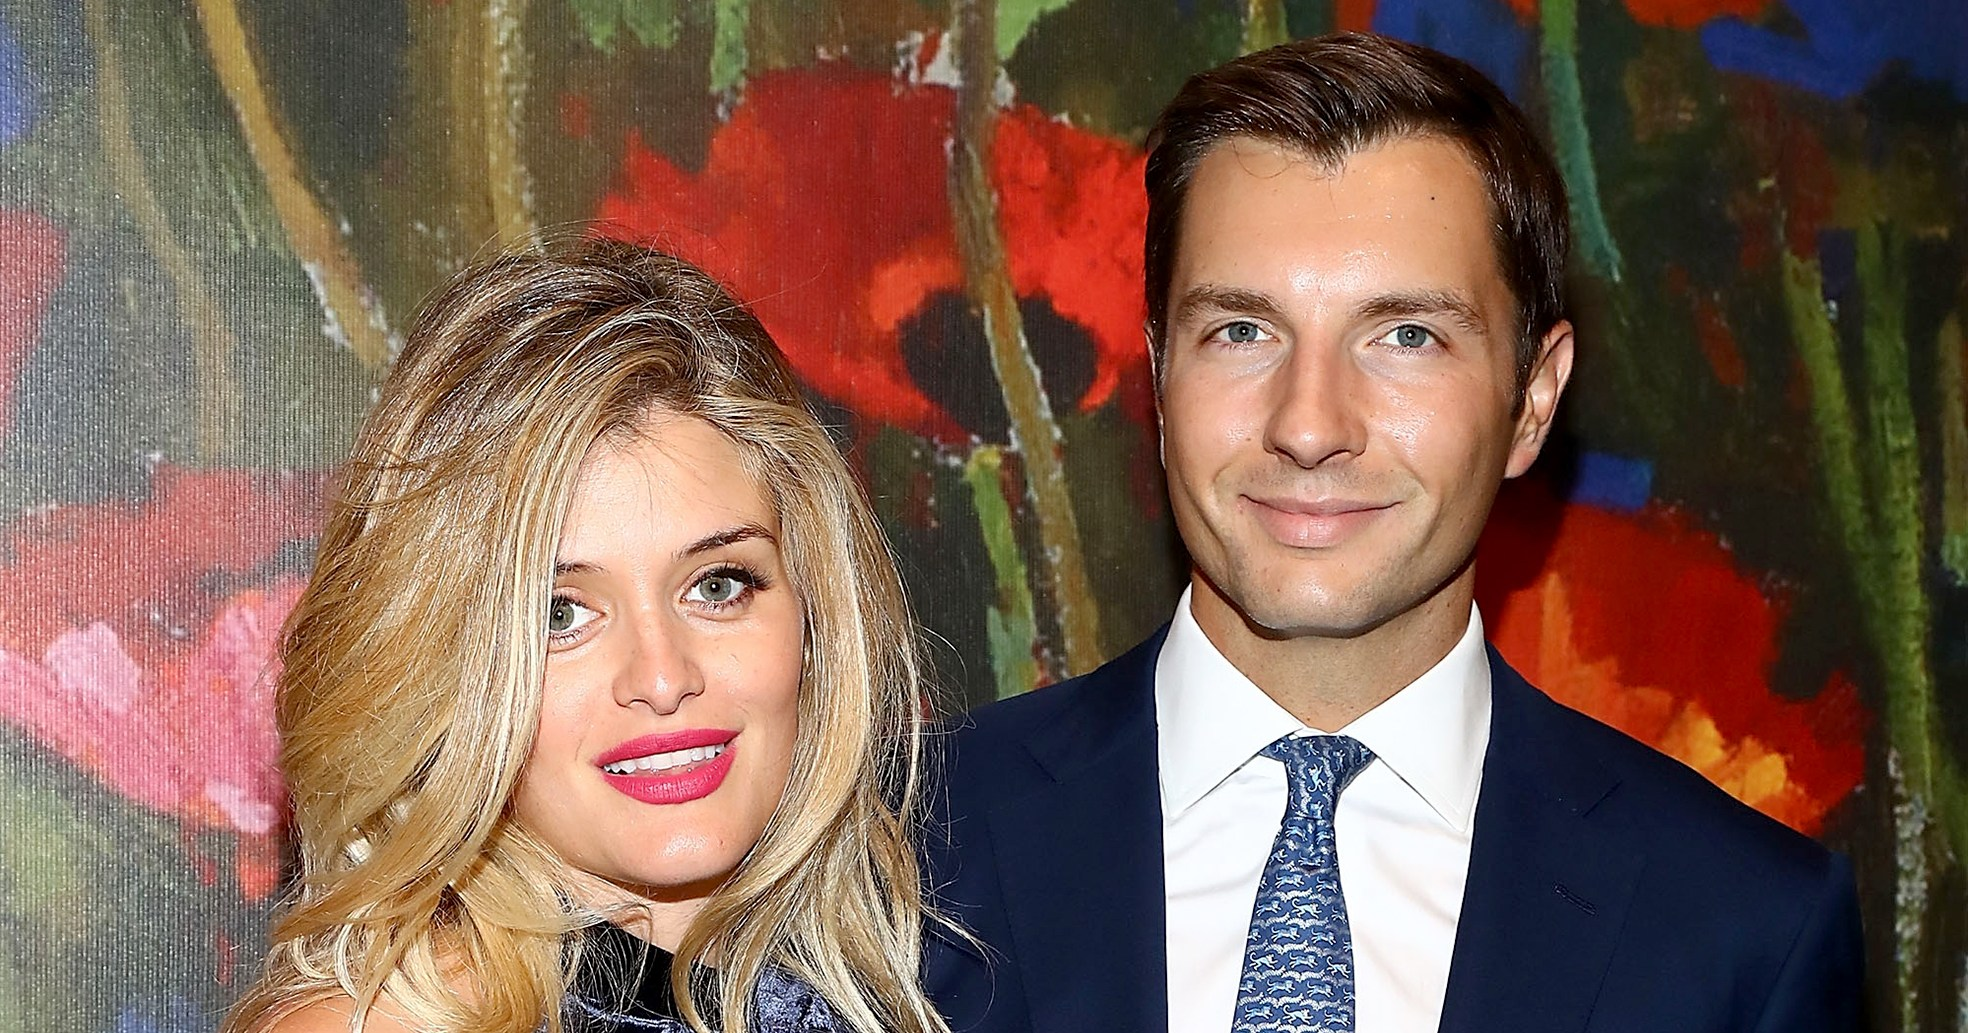 Daphne Oz Uses 'Bedtime' to Keep Romance Alive With Husband